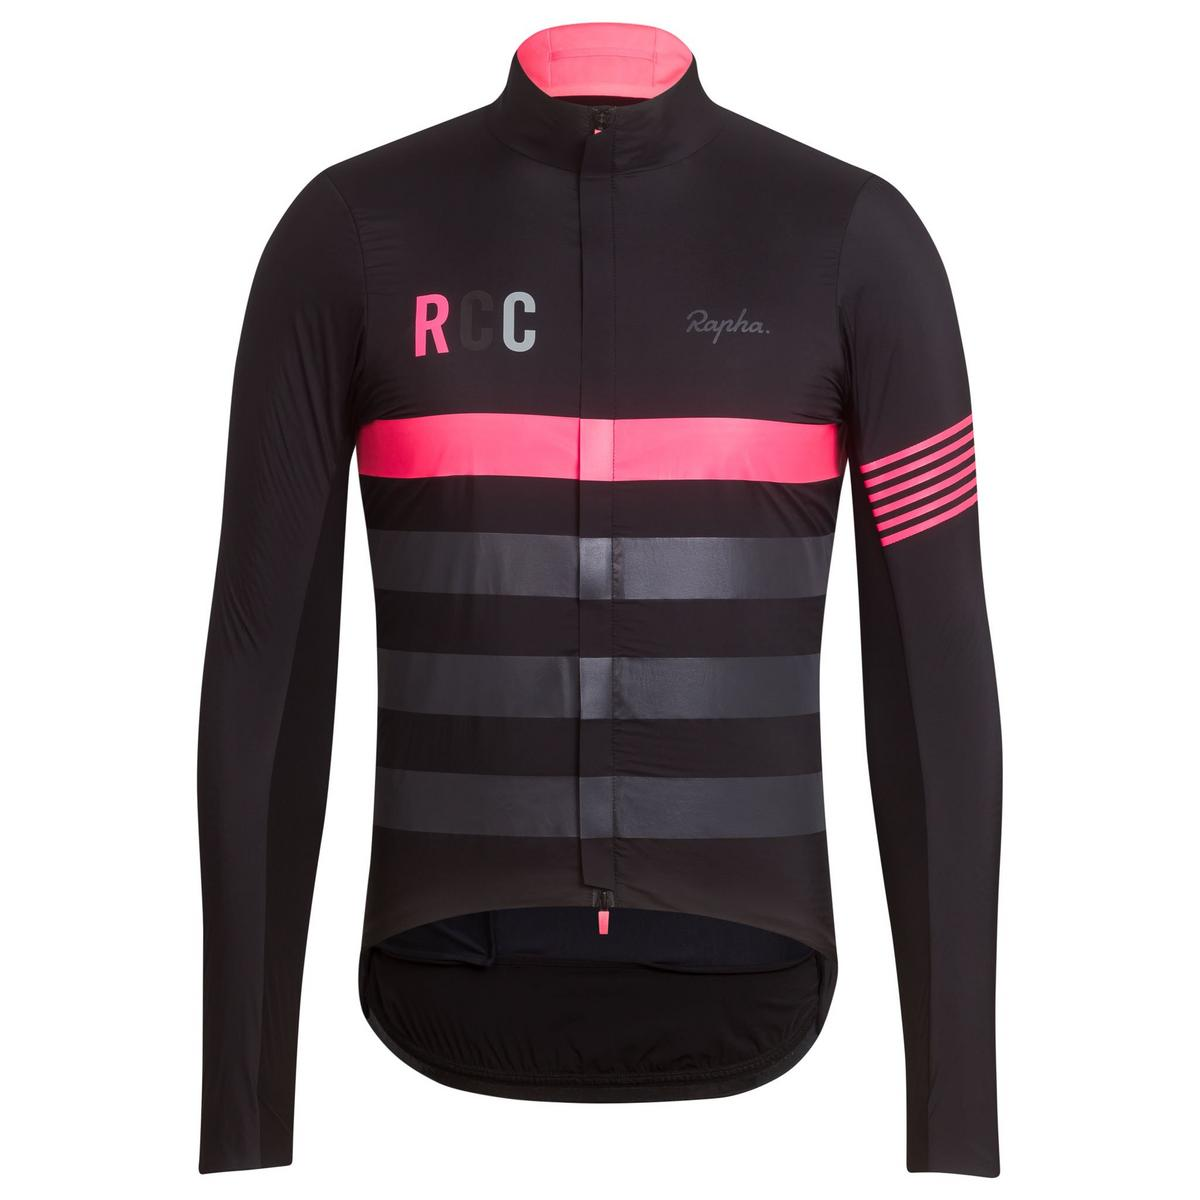 RCC Pro Team Insulated Jacket